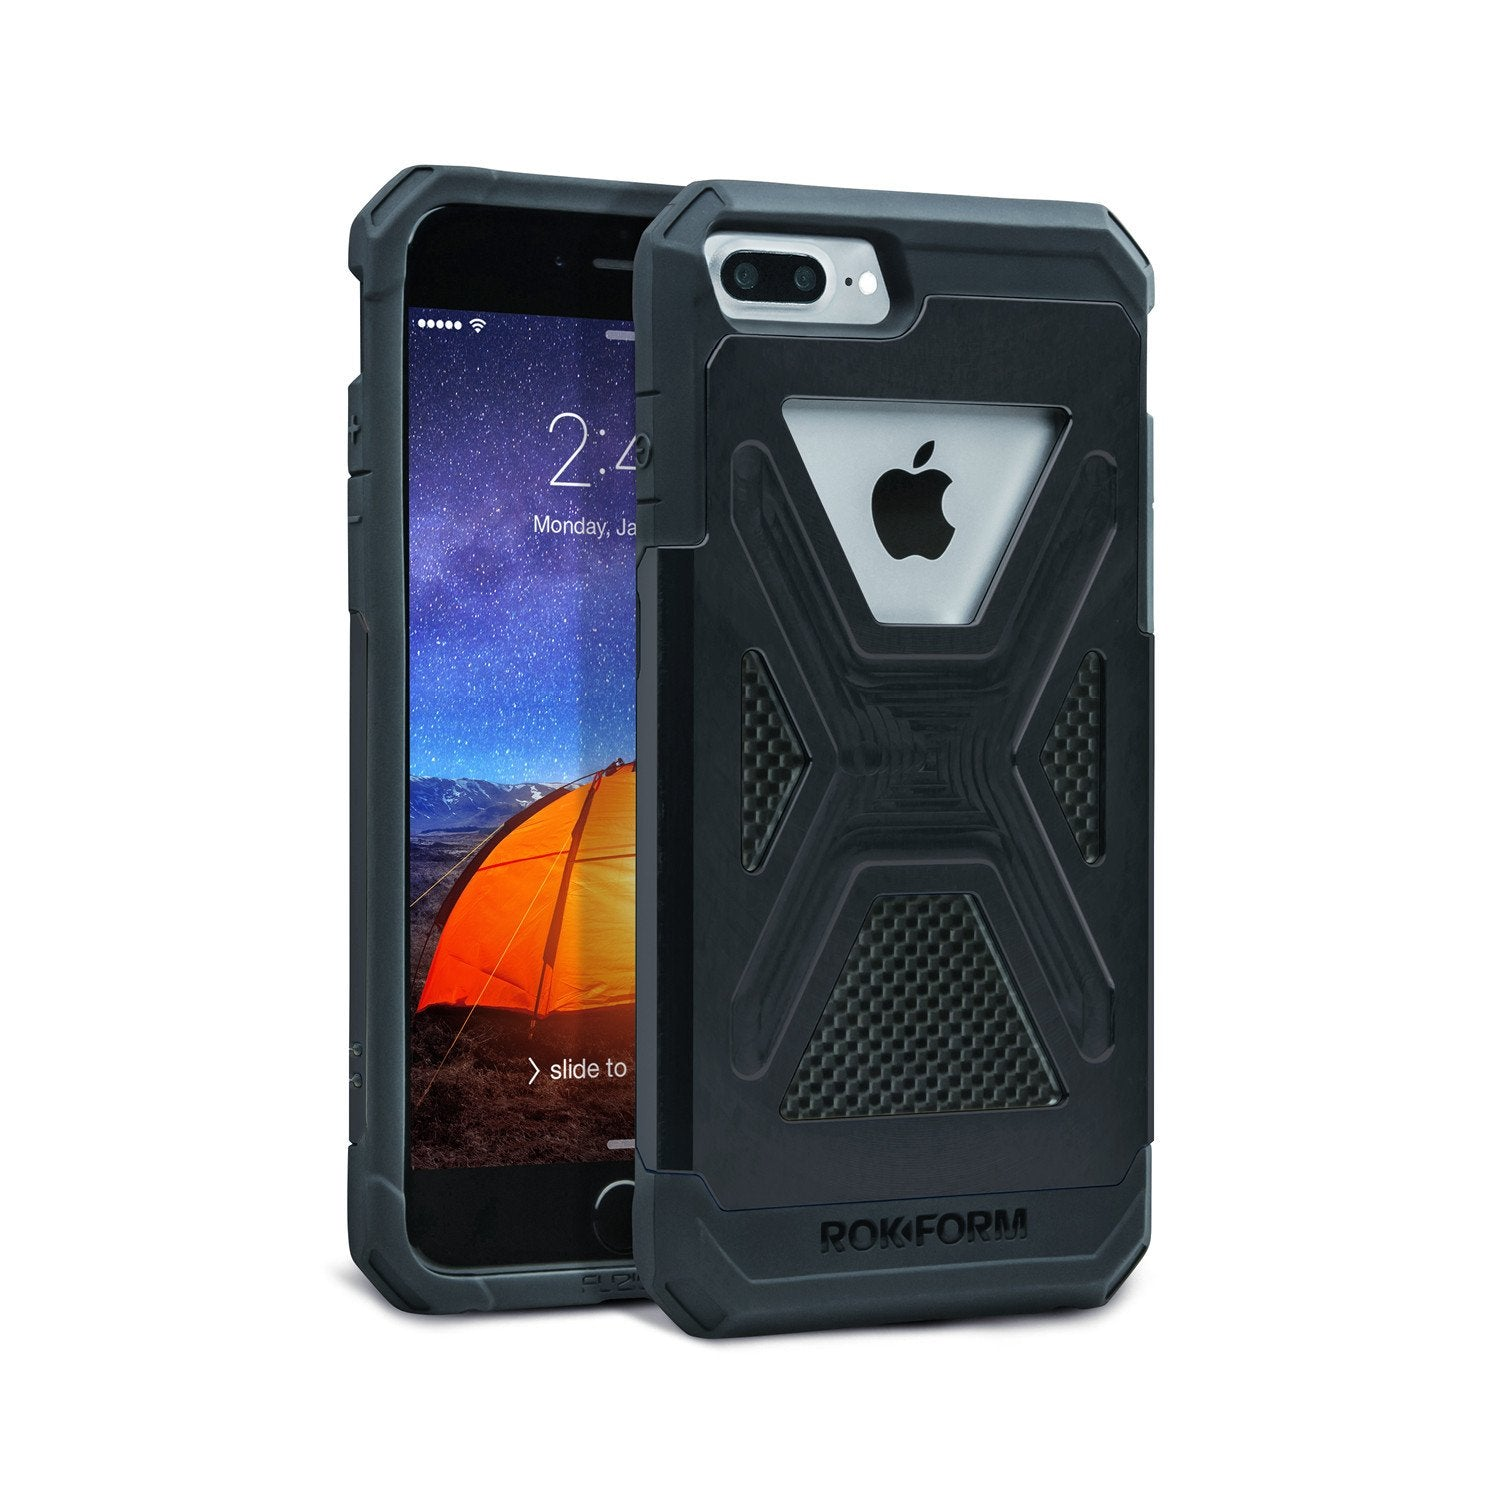 Fuzion Case - iPhone 8 Plus / iPhone 7 Plus - Rokform